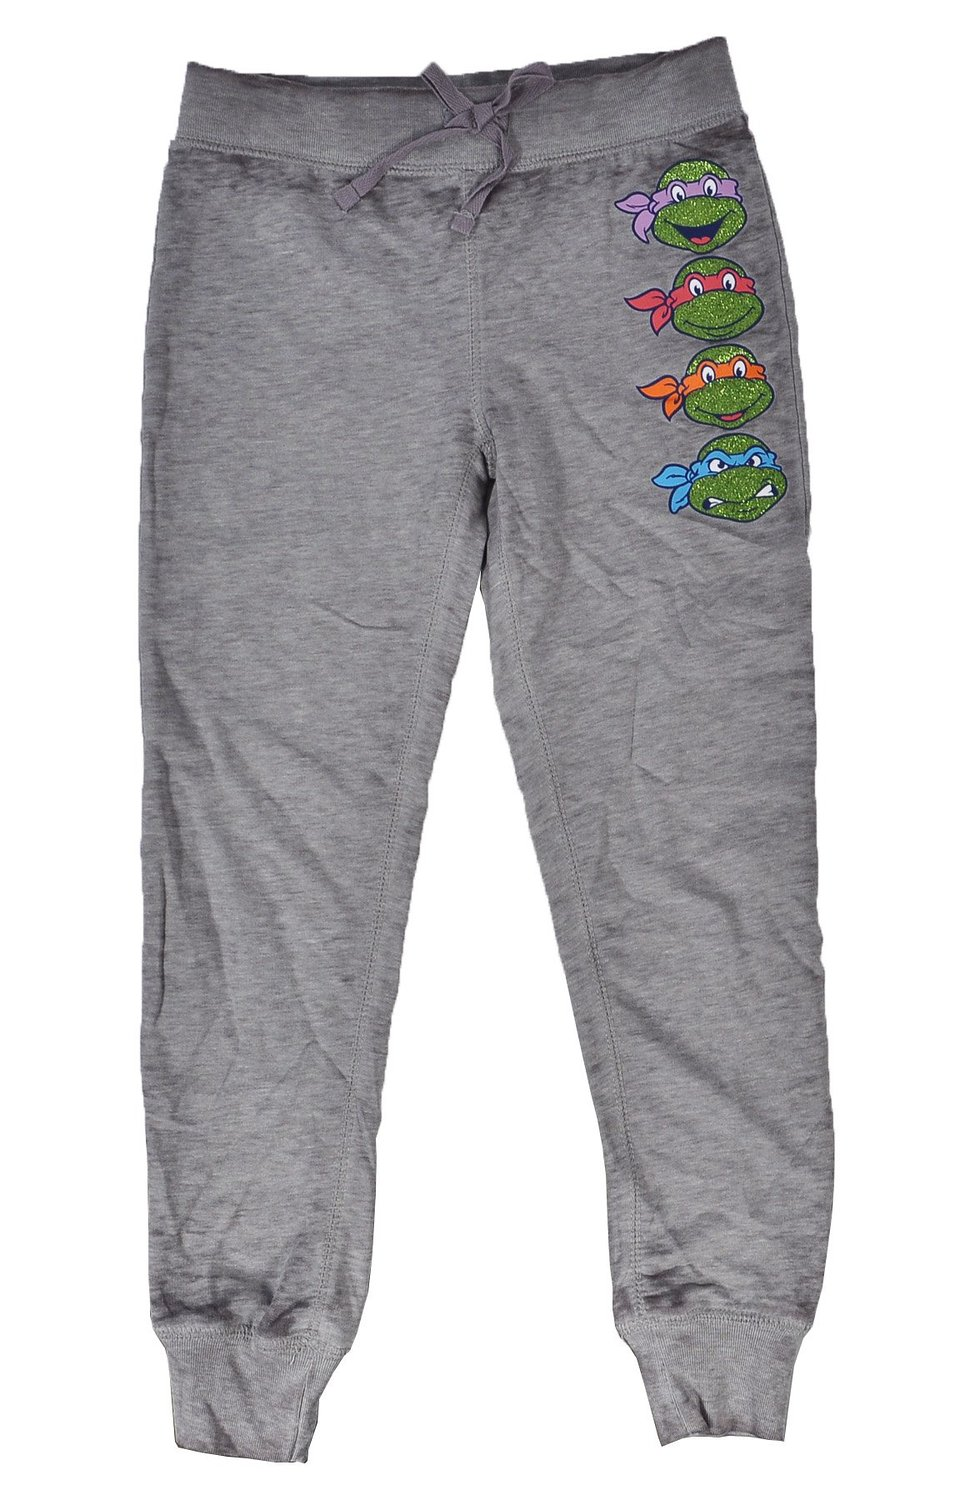 Tie Dye Cool Turtle Teenagers Boys Sweatpants Fashion Pants with Pockets